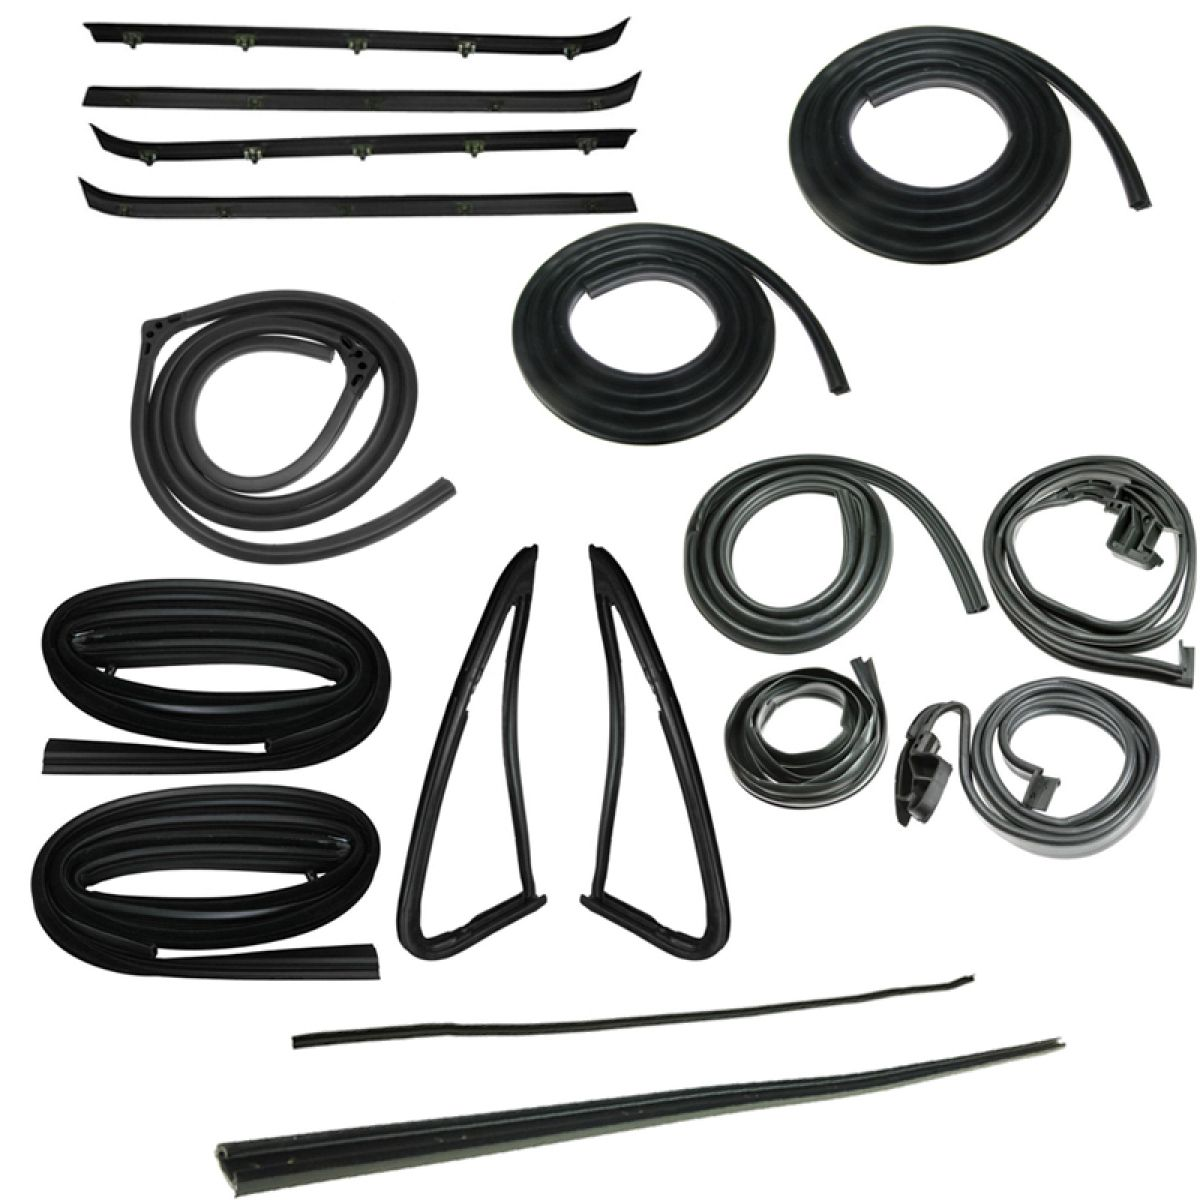 1983 Chevrolet K5 Blazer Black Complete Weatherstrip Kit 18 Piece Set For Gmc Jimmy Chevy Fullsize